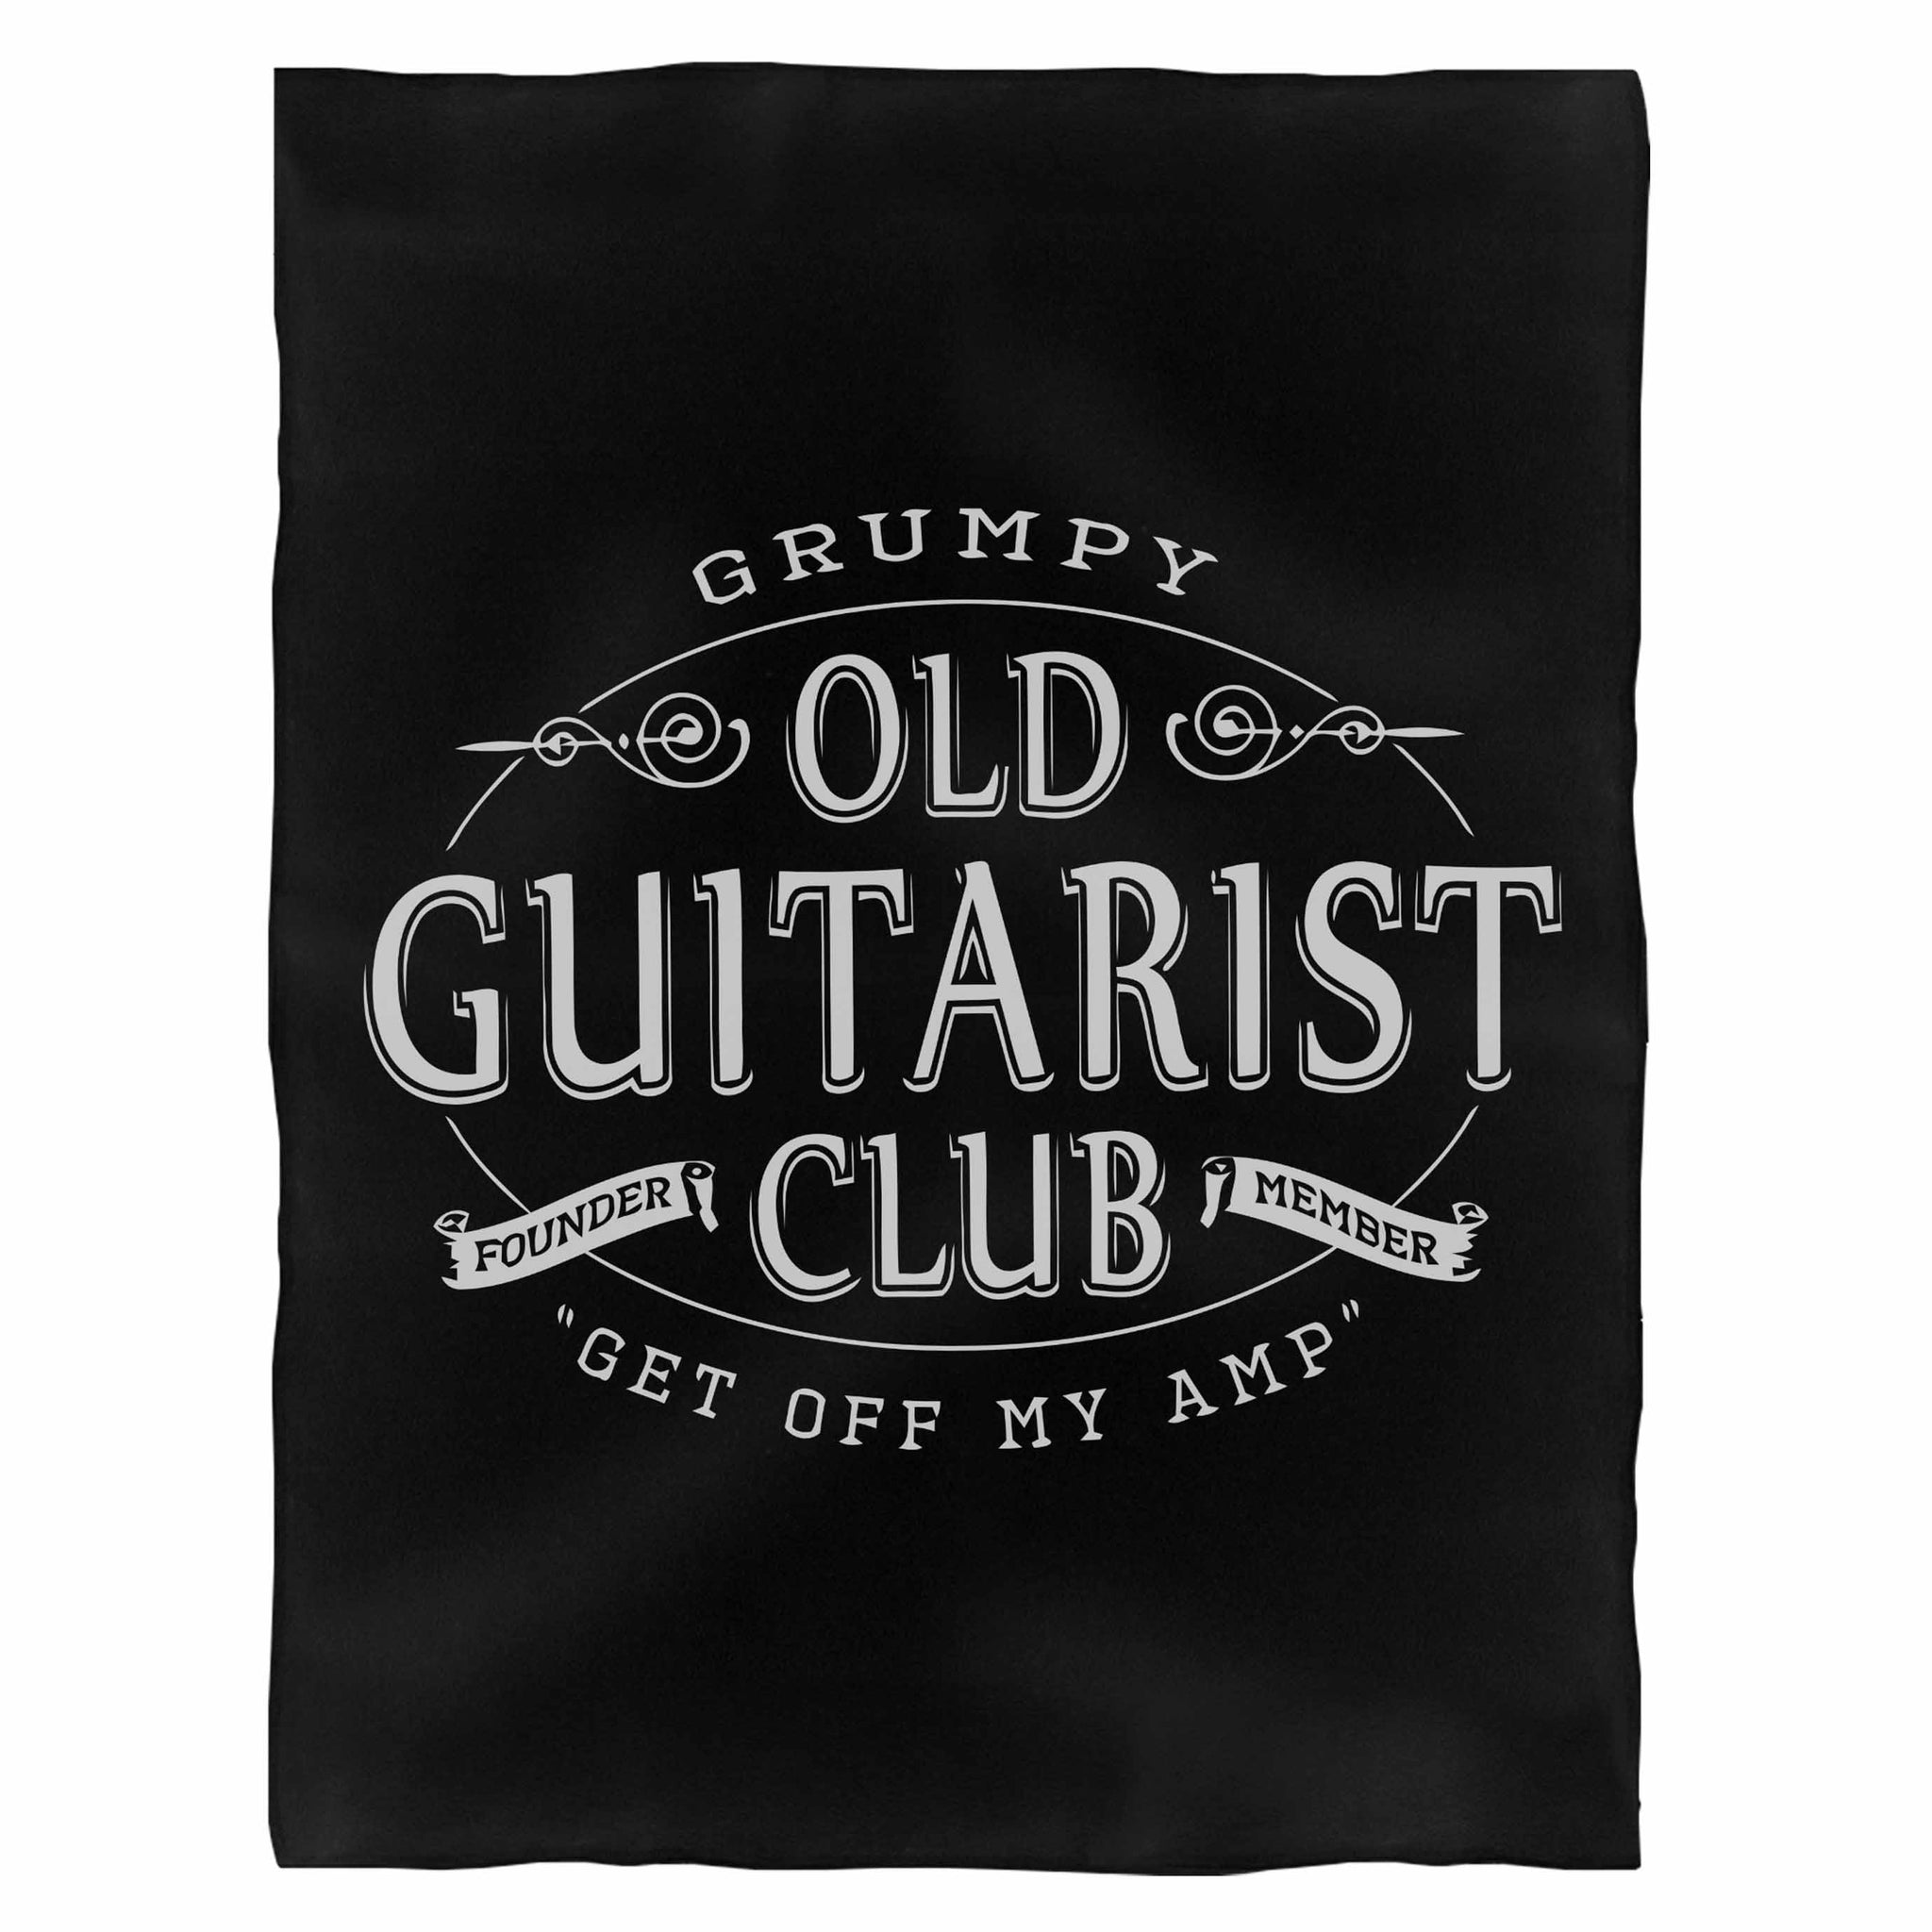 Grumpy Old Guitarist Club Fleece Blanket